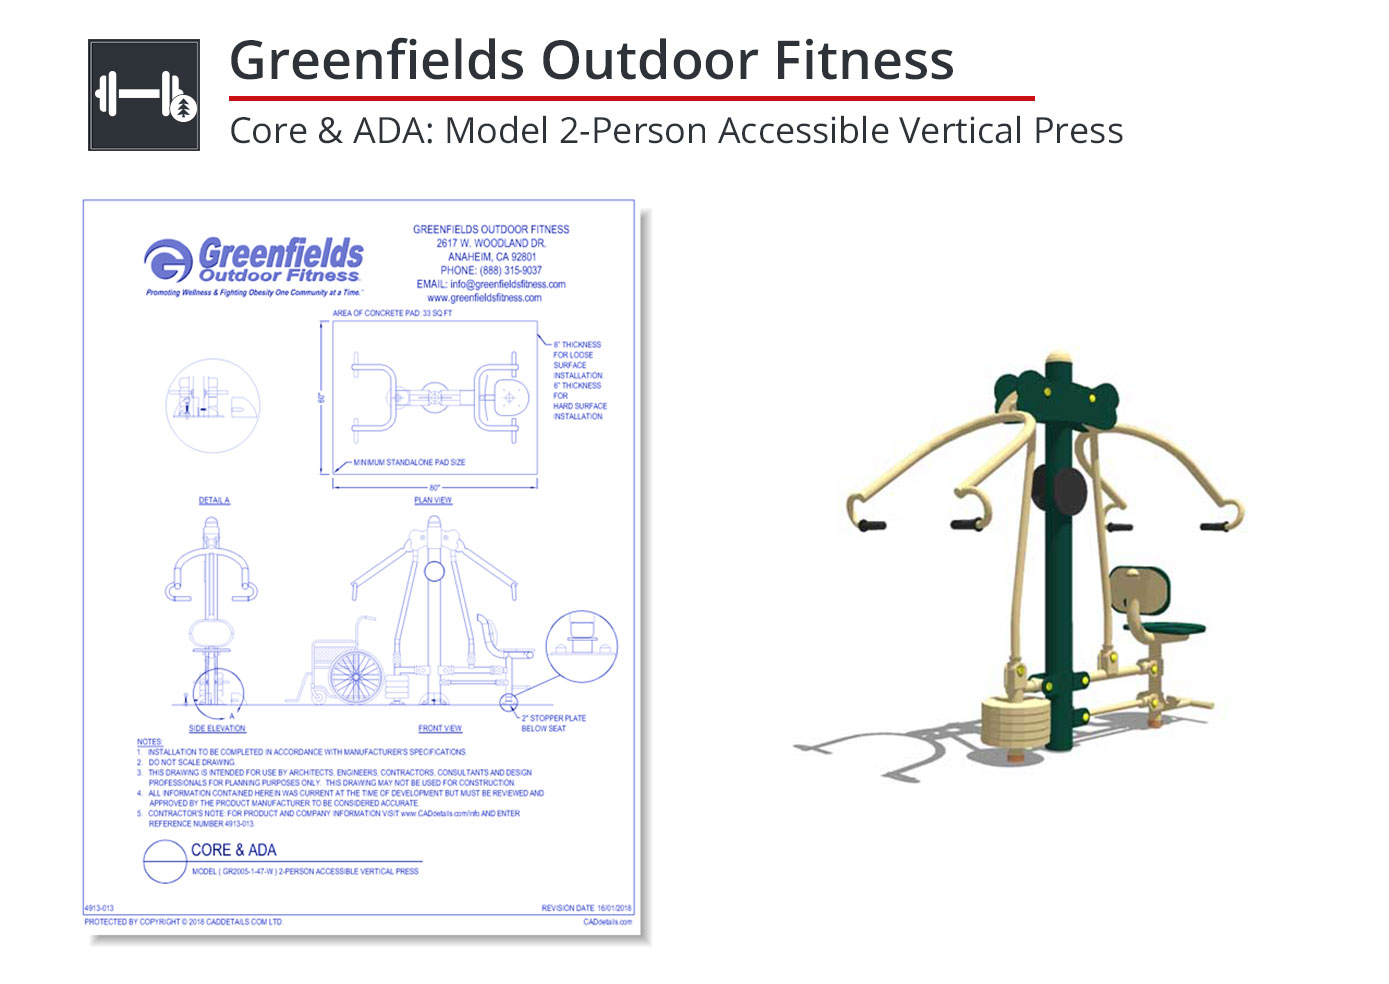 4913-018 2-Person Accessible Vertical Press